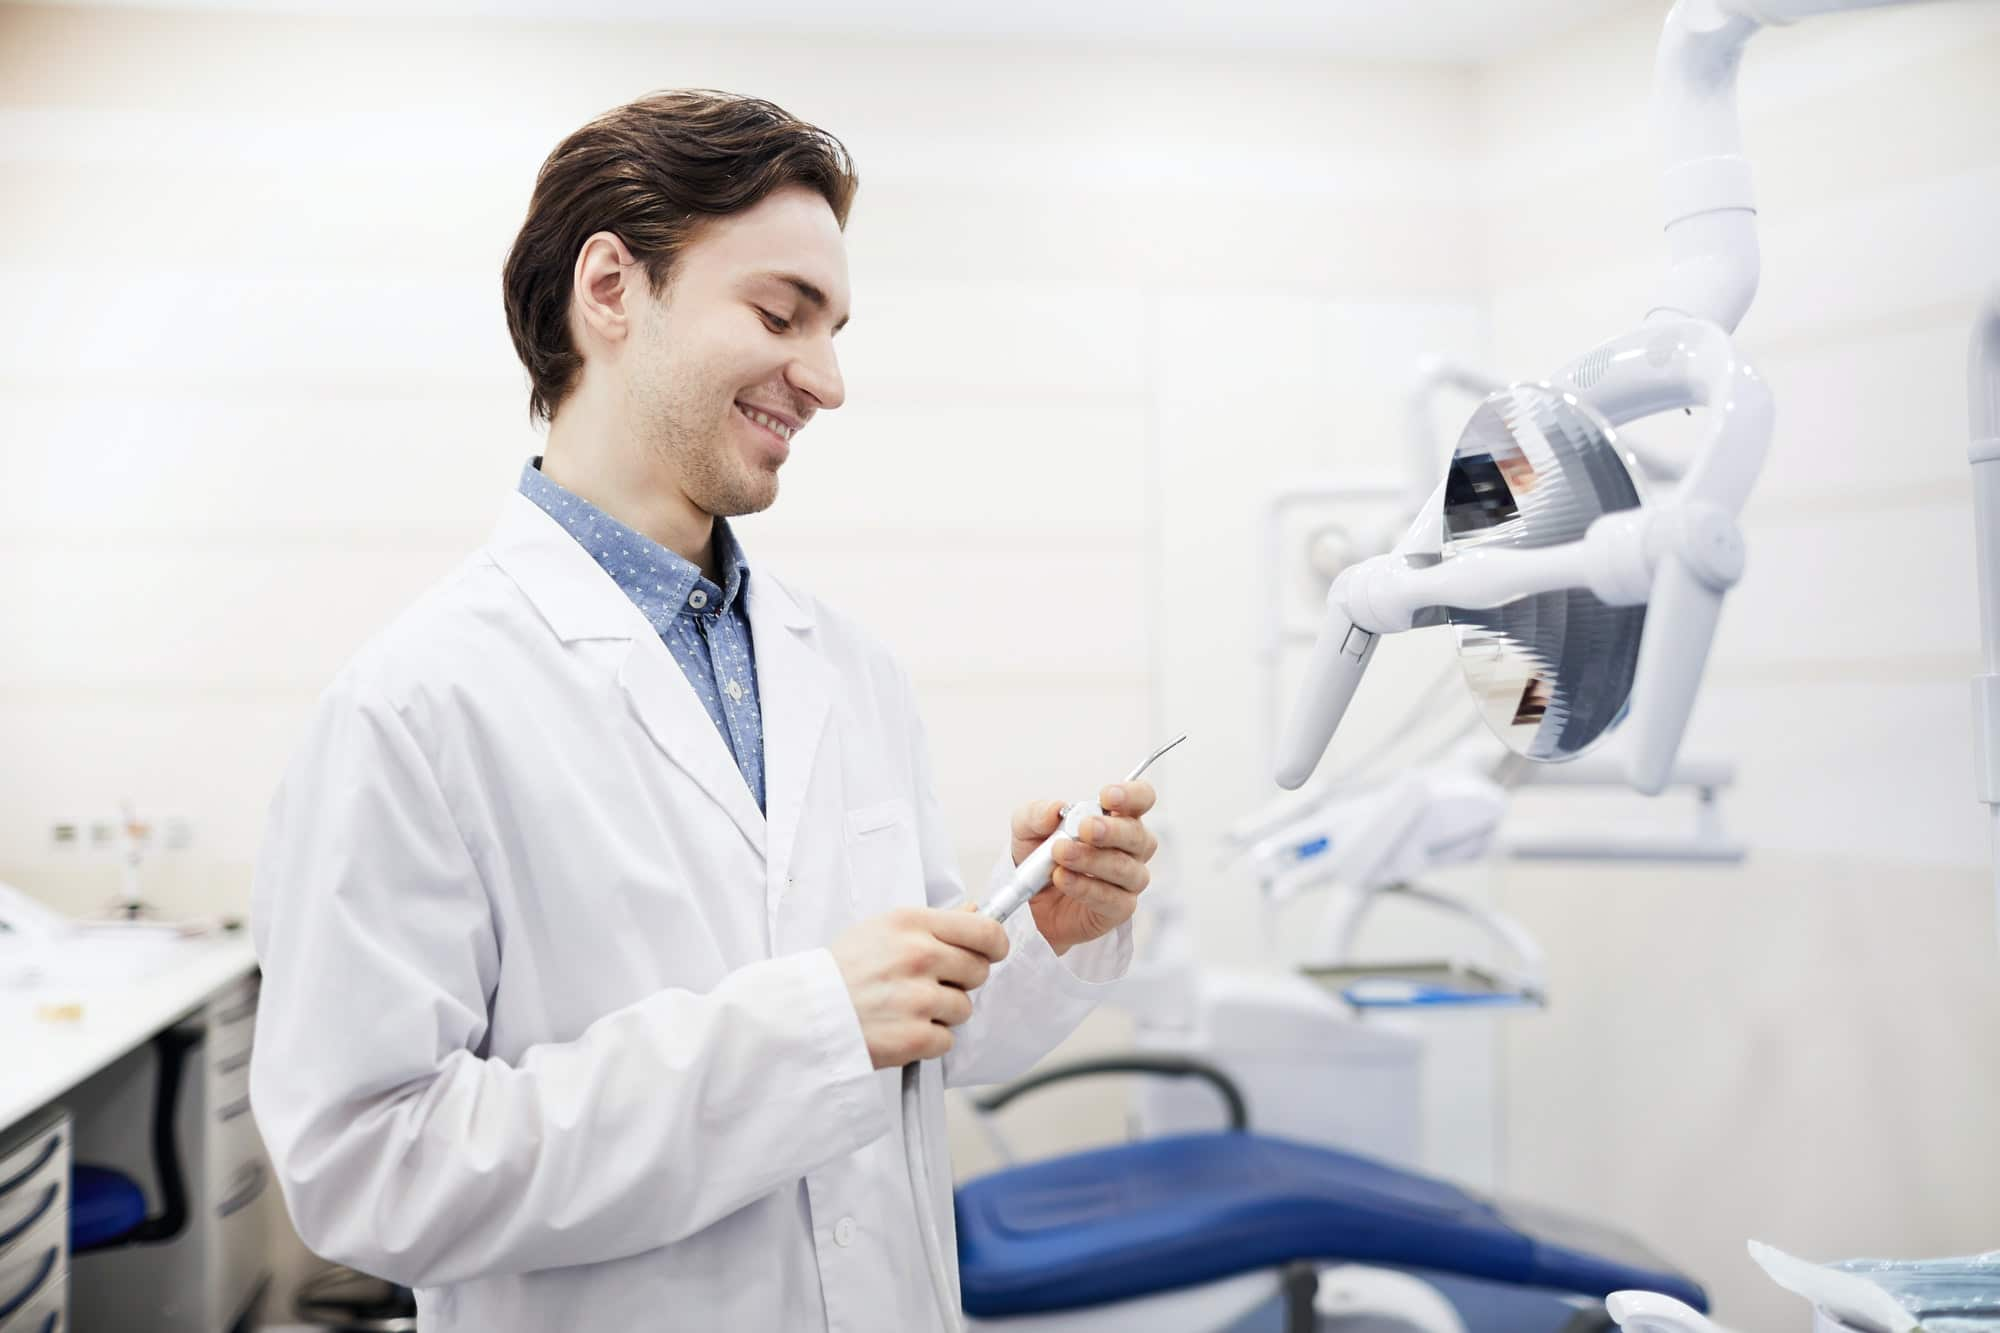 Smiling Young Dentist